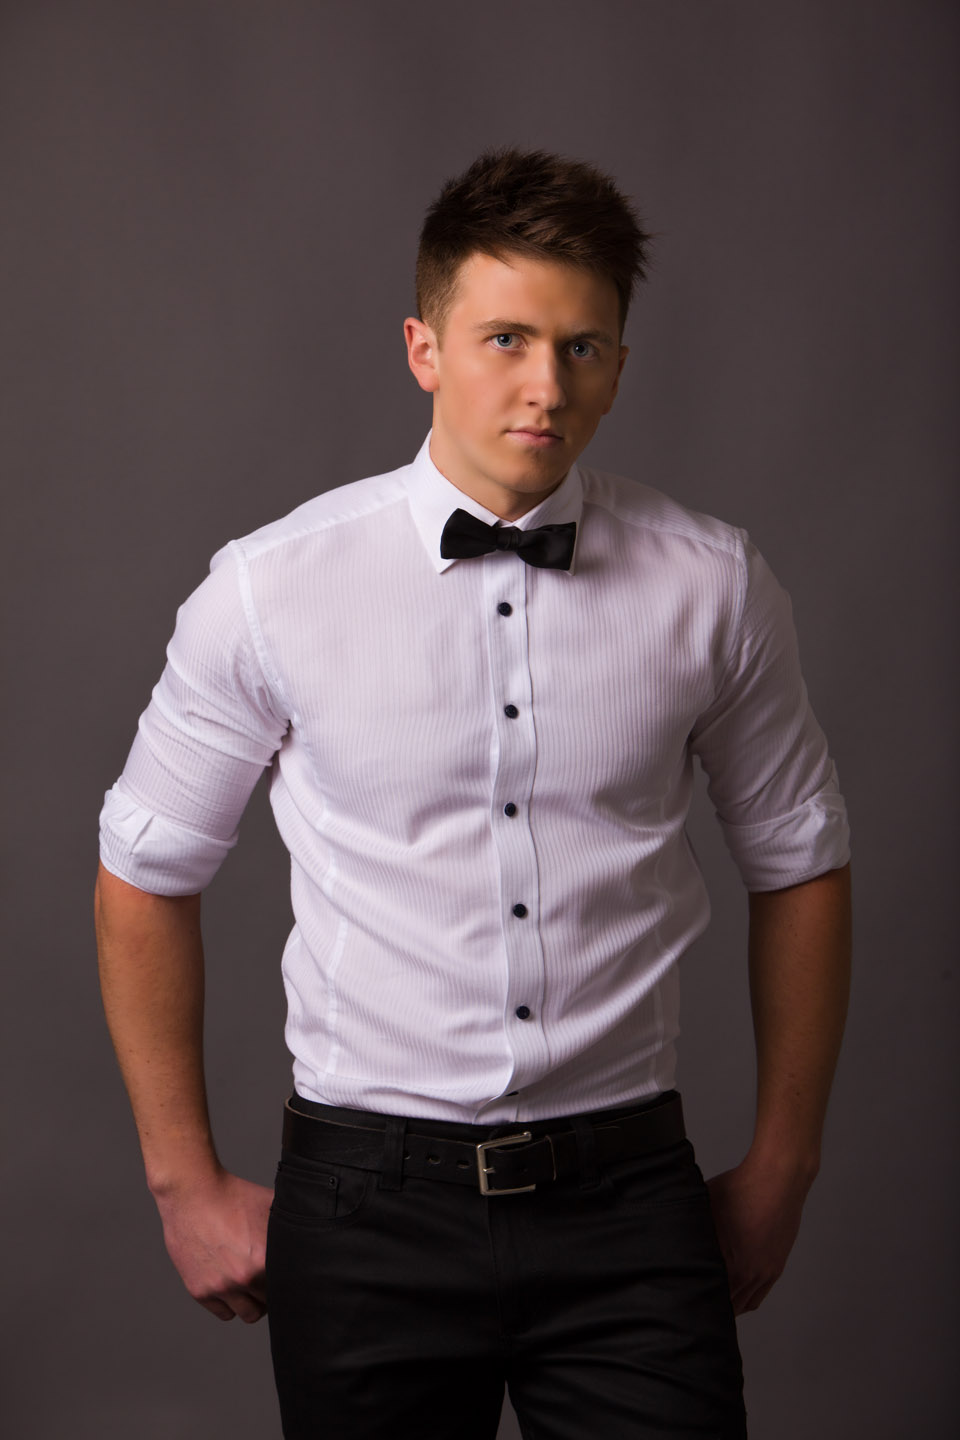 Using the large studio lights. Model is dressed formal with bow tie